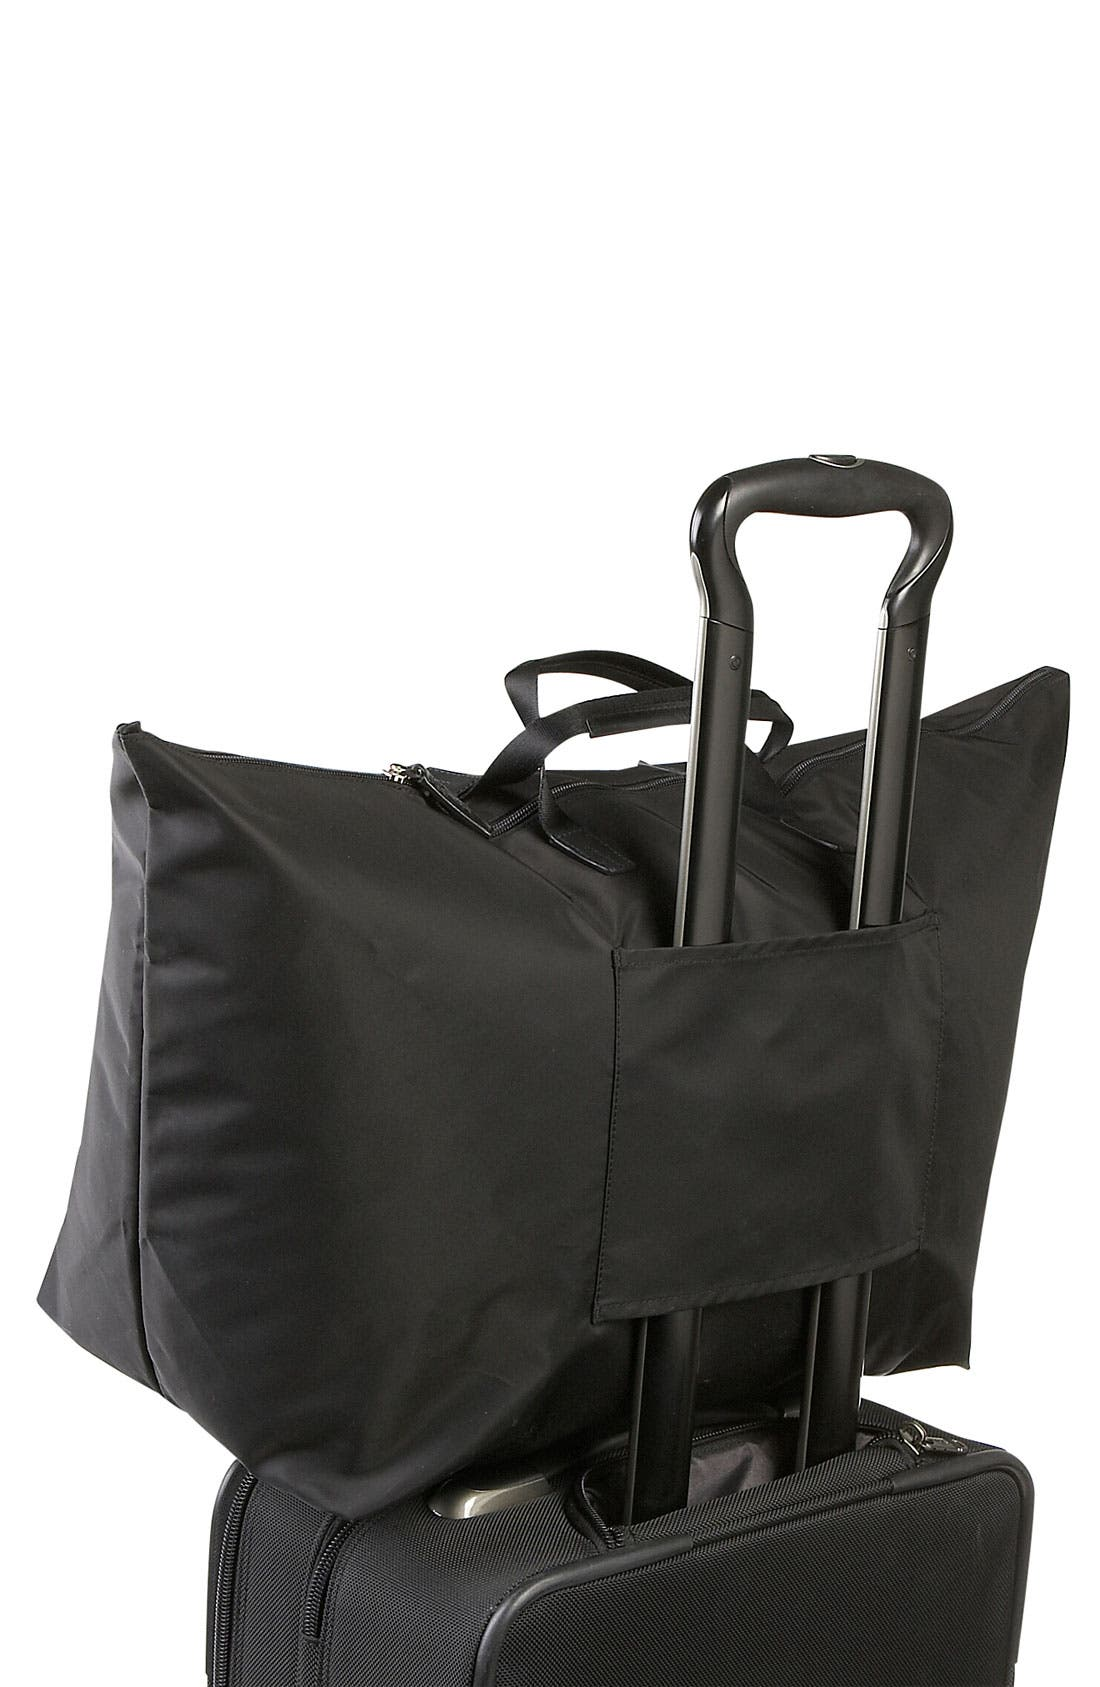 TUMI,                             'Just in Case' Packable Tote,                             Alternate thumbnail 2, color,                             001